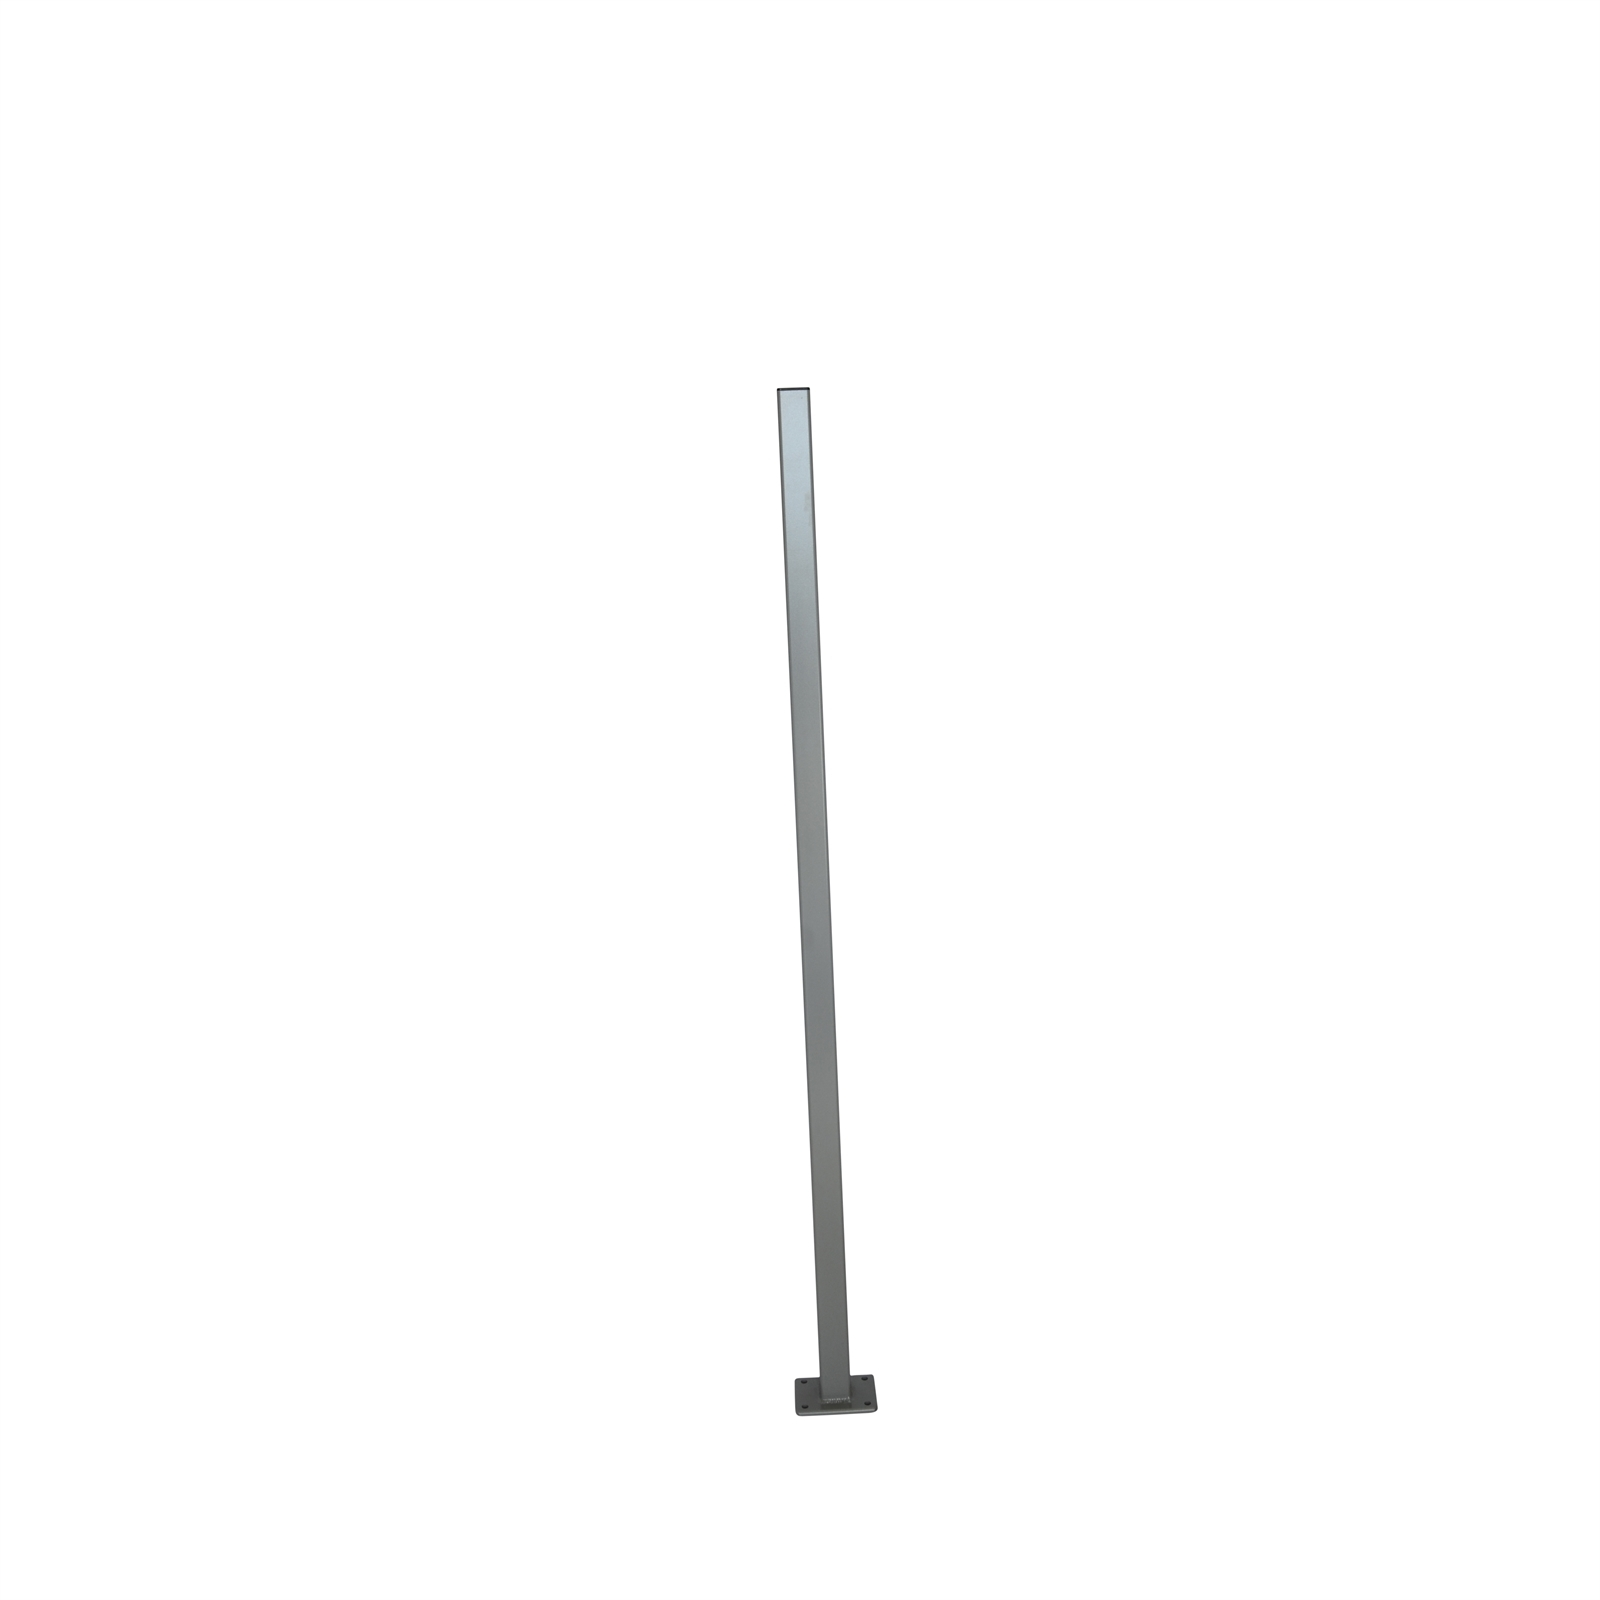 Protector Aluminium 50 x 50 x 1300mm Palladium Silver Flanged Fence Post With Cap